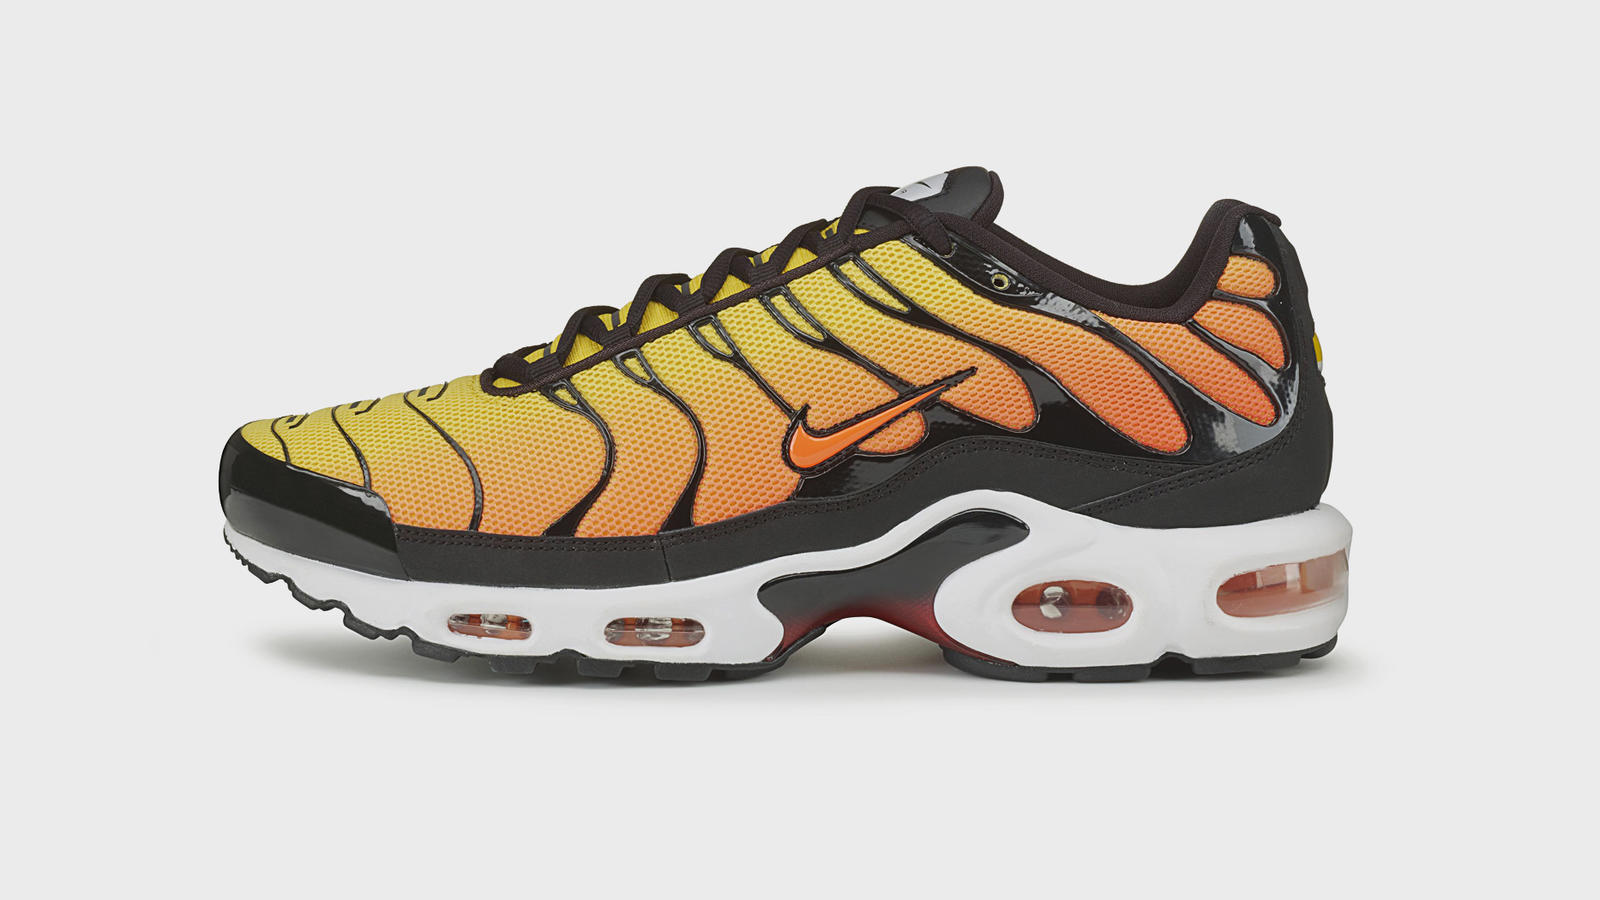 detailed look a3573 4efae The Untold Story of the Nike Air Max Plus 23